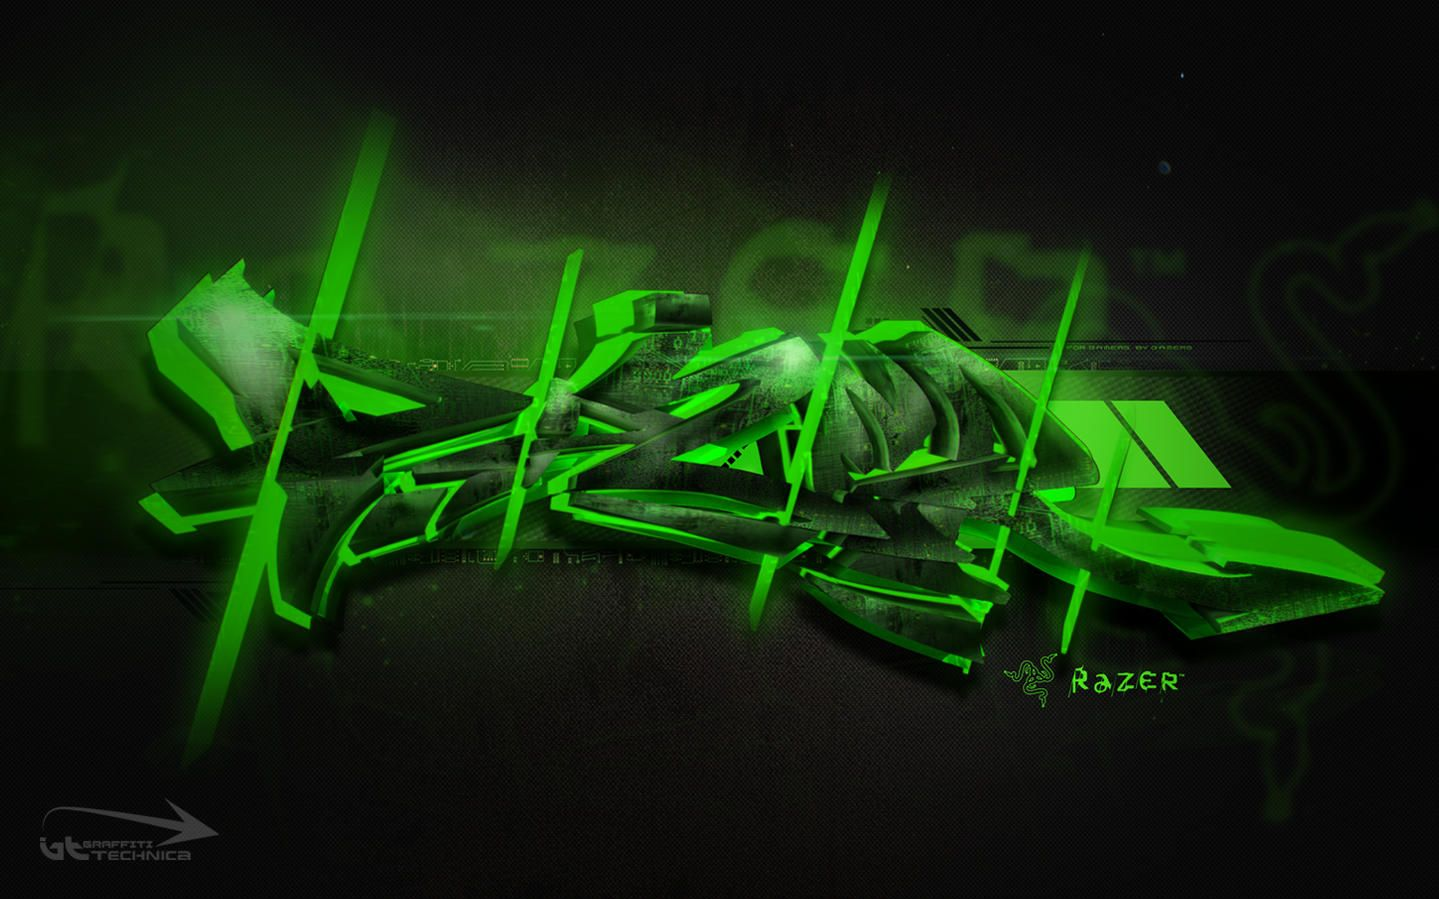 1439x899 Graffiti Style Wallpaper - illustrating various hardware logos ...